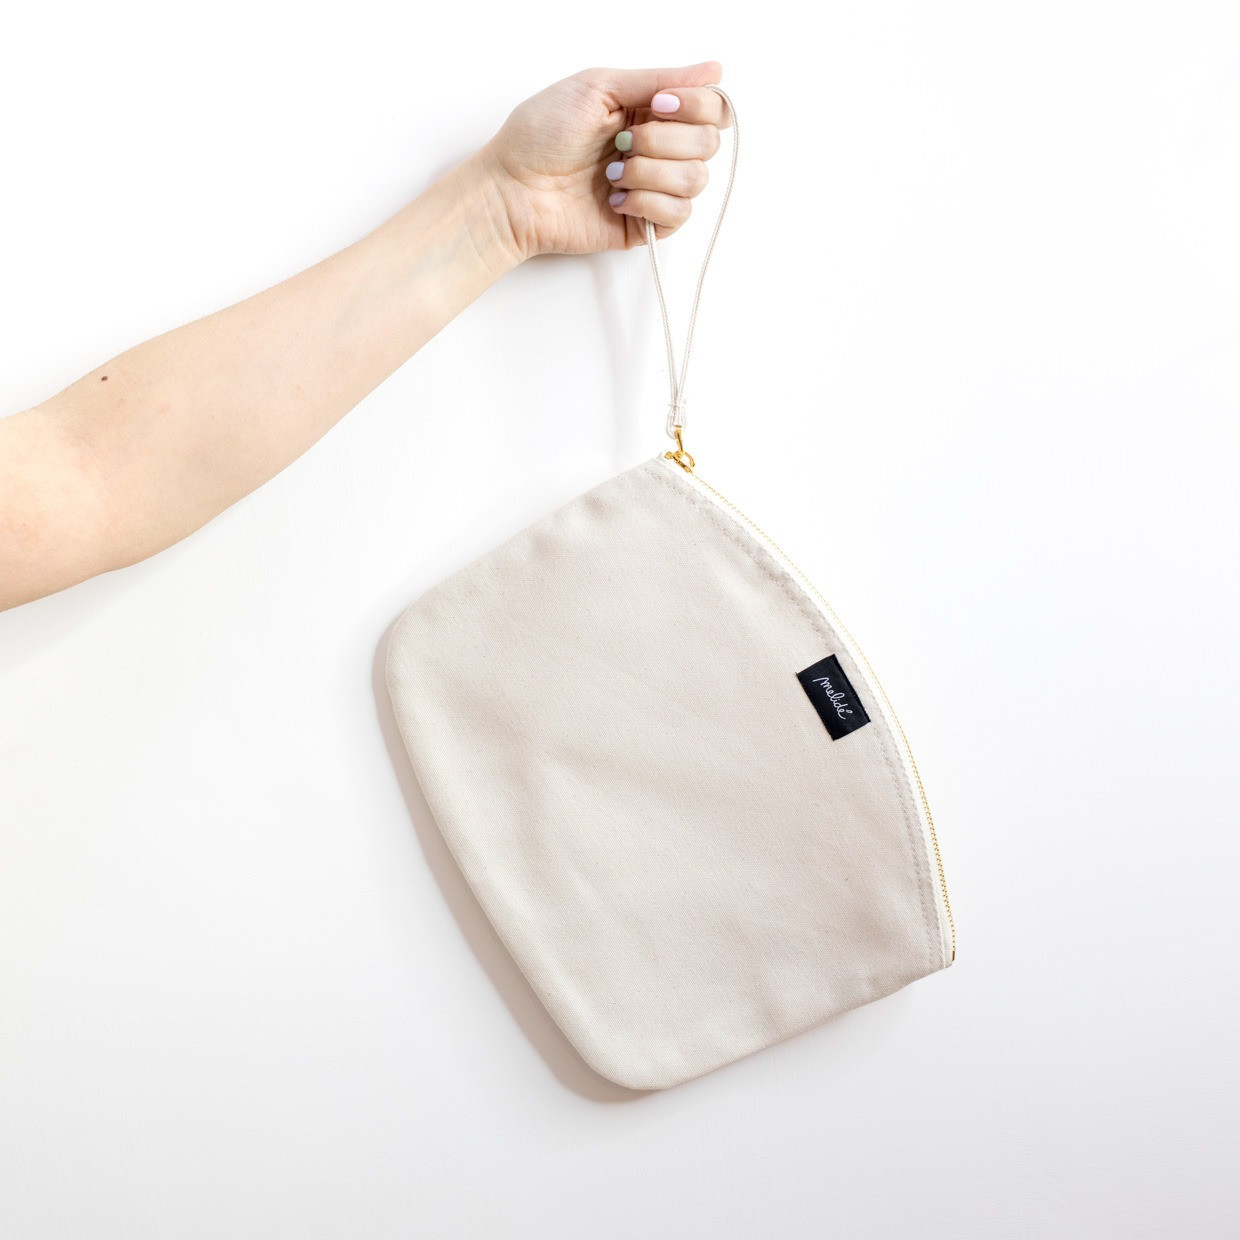 The ZIPPED POUCH L - Star